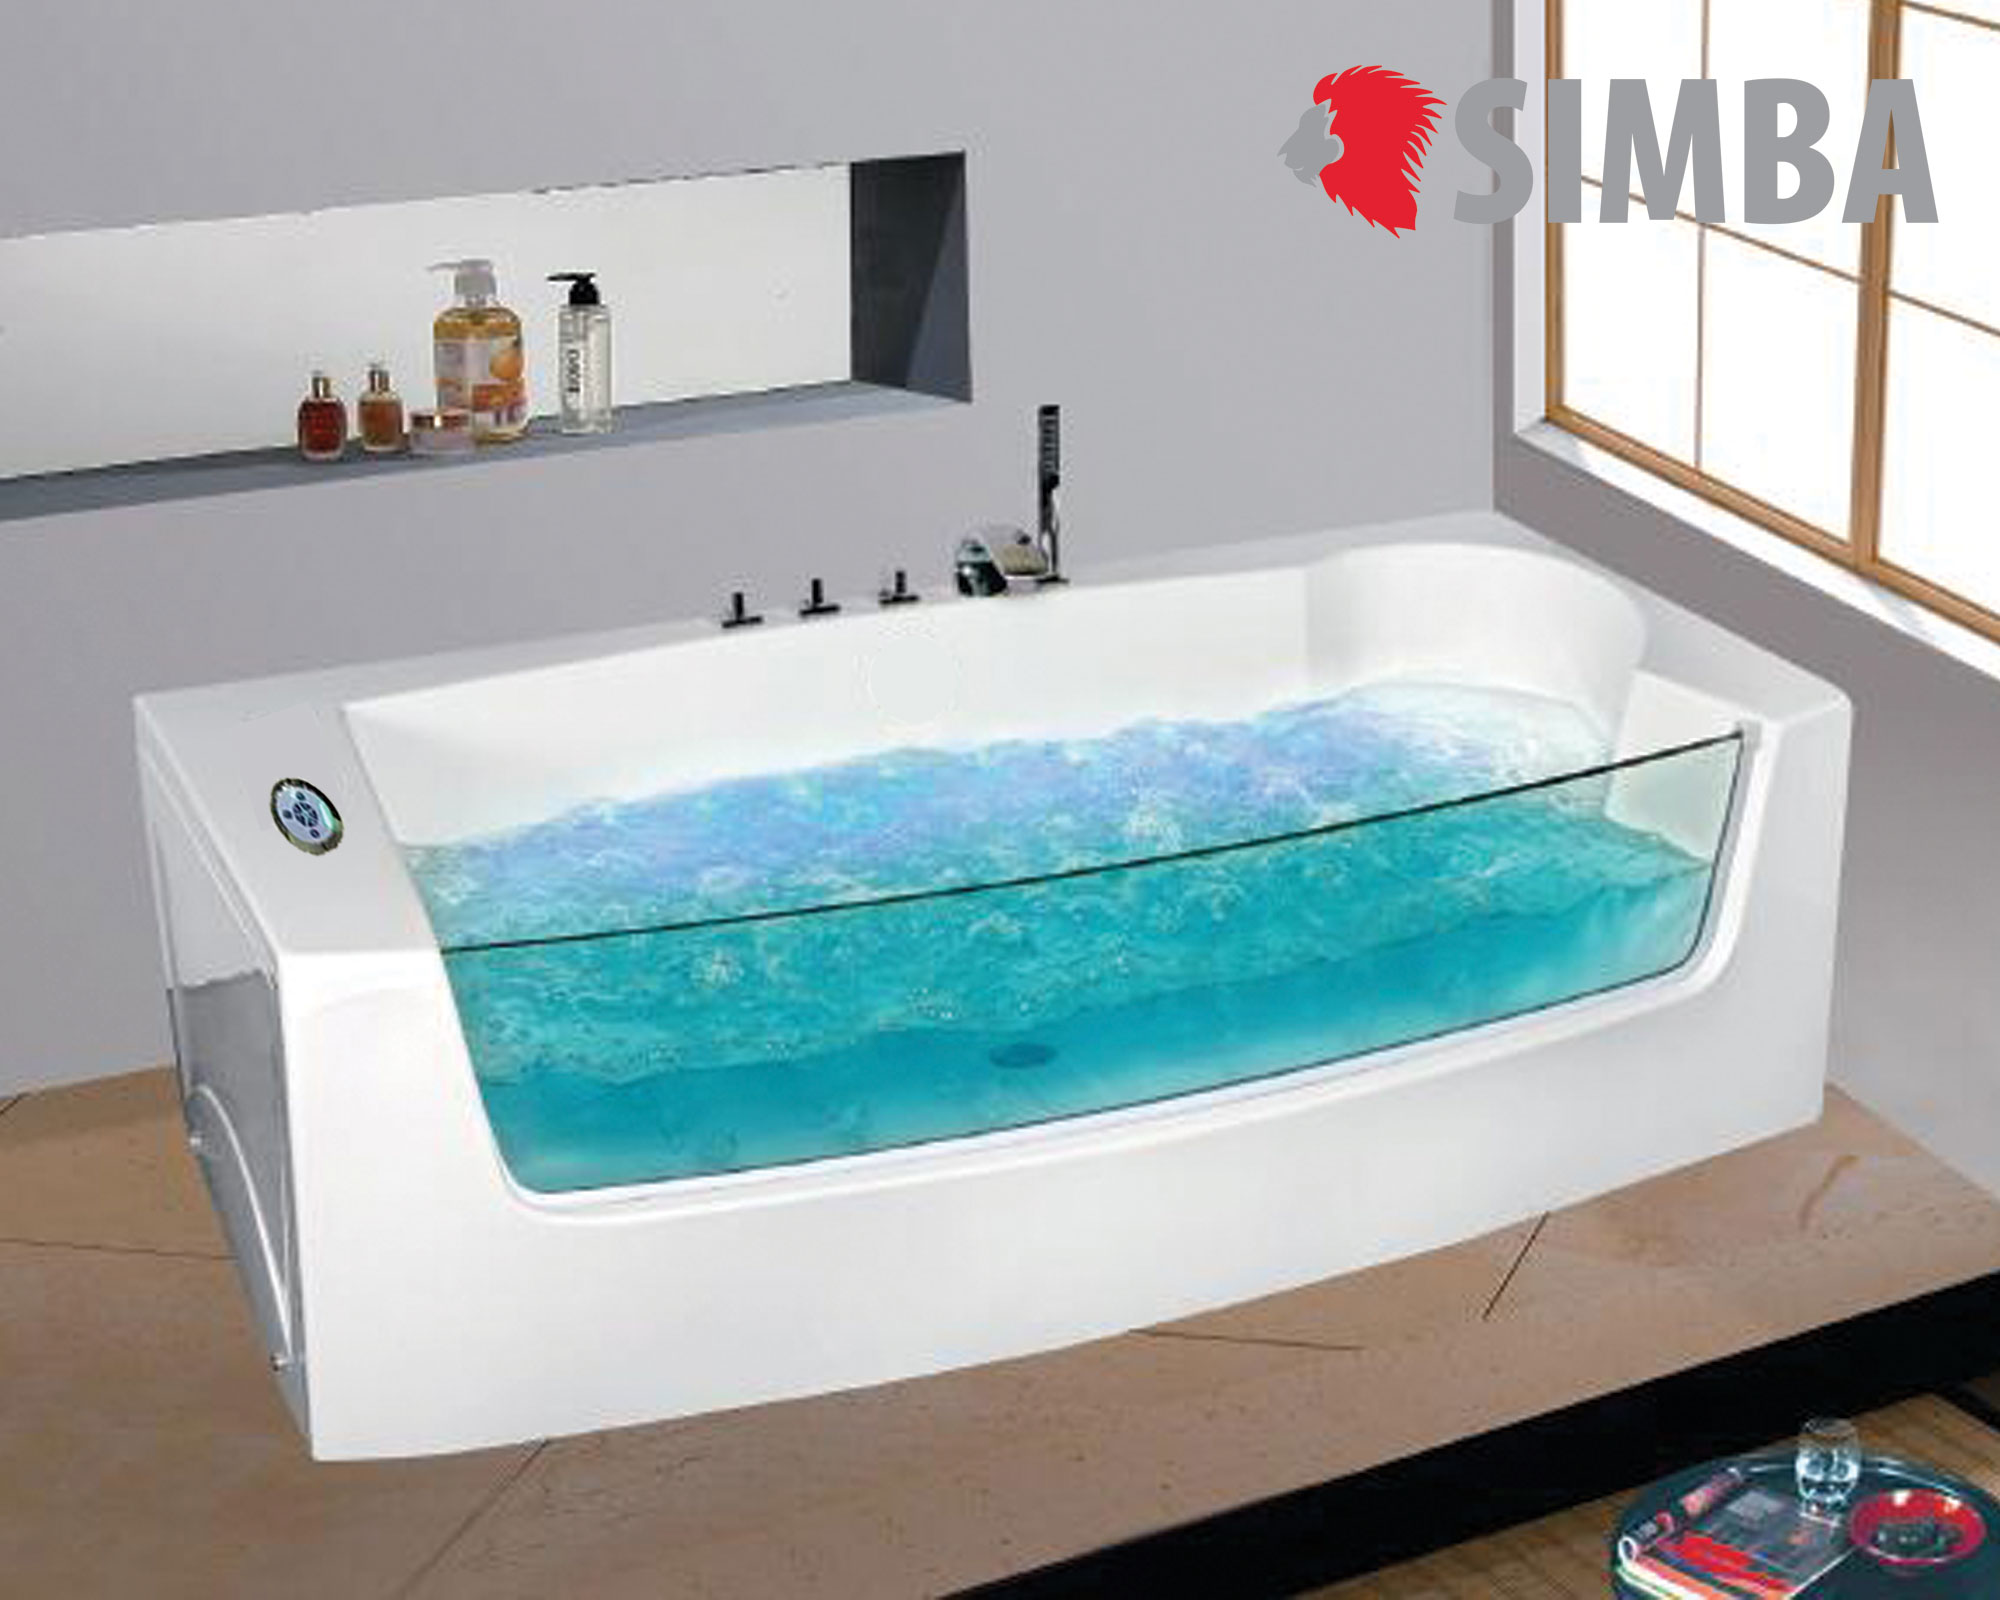 WHIRLPOOL BATH TUB SPA 180 x 90 cm BATH TUB HOT TUB Modelo Dorado ...